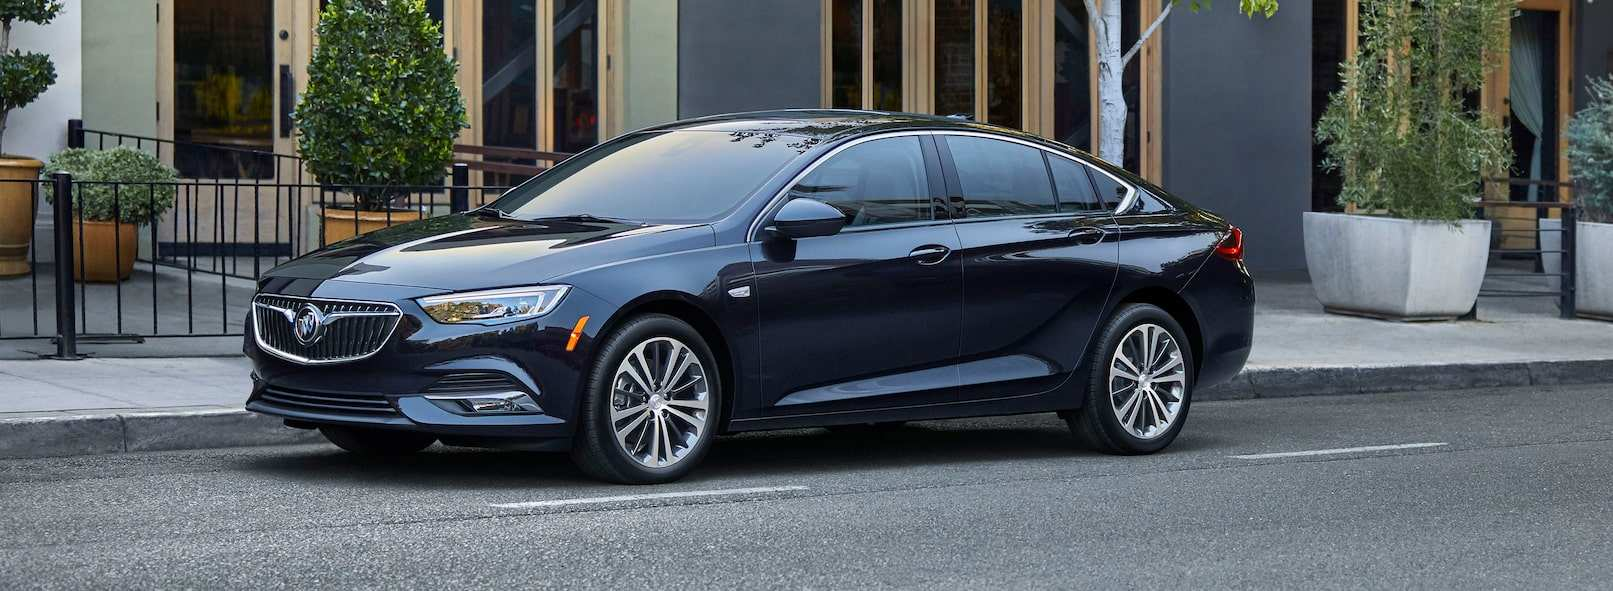 36 The New 2019 Buick Regal Gs Review Specs Release for New 2019 Buick Regal Gs Review Specs